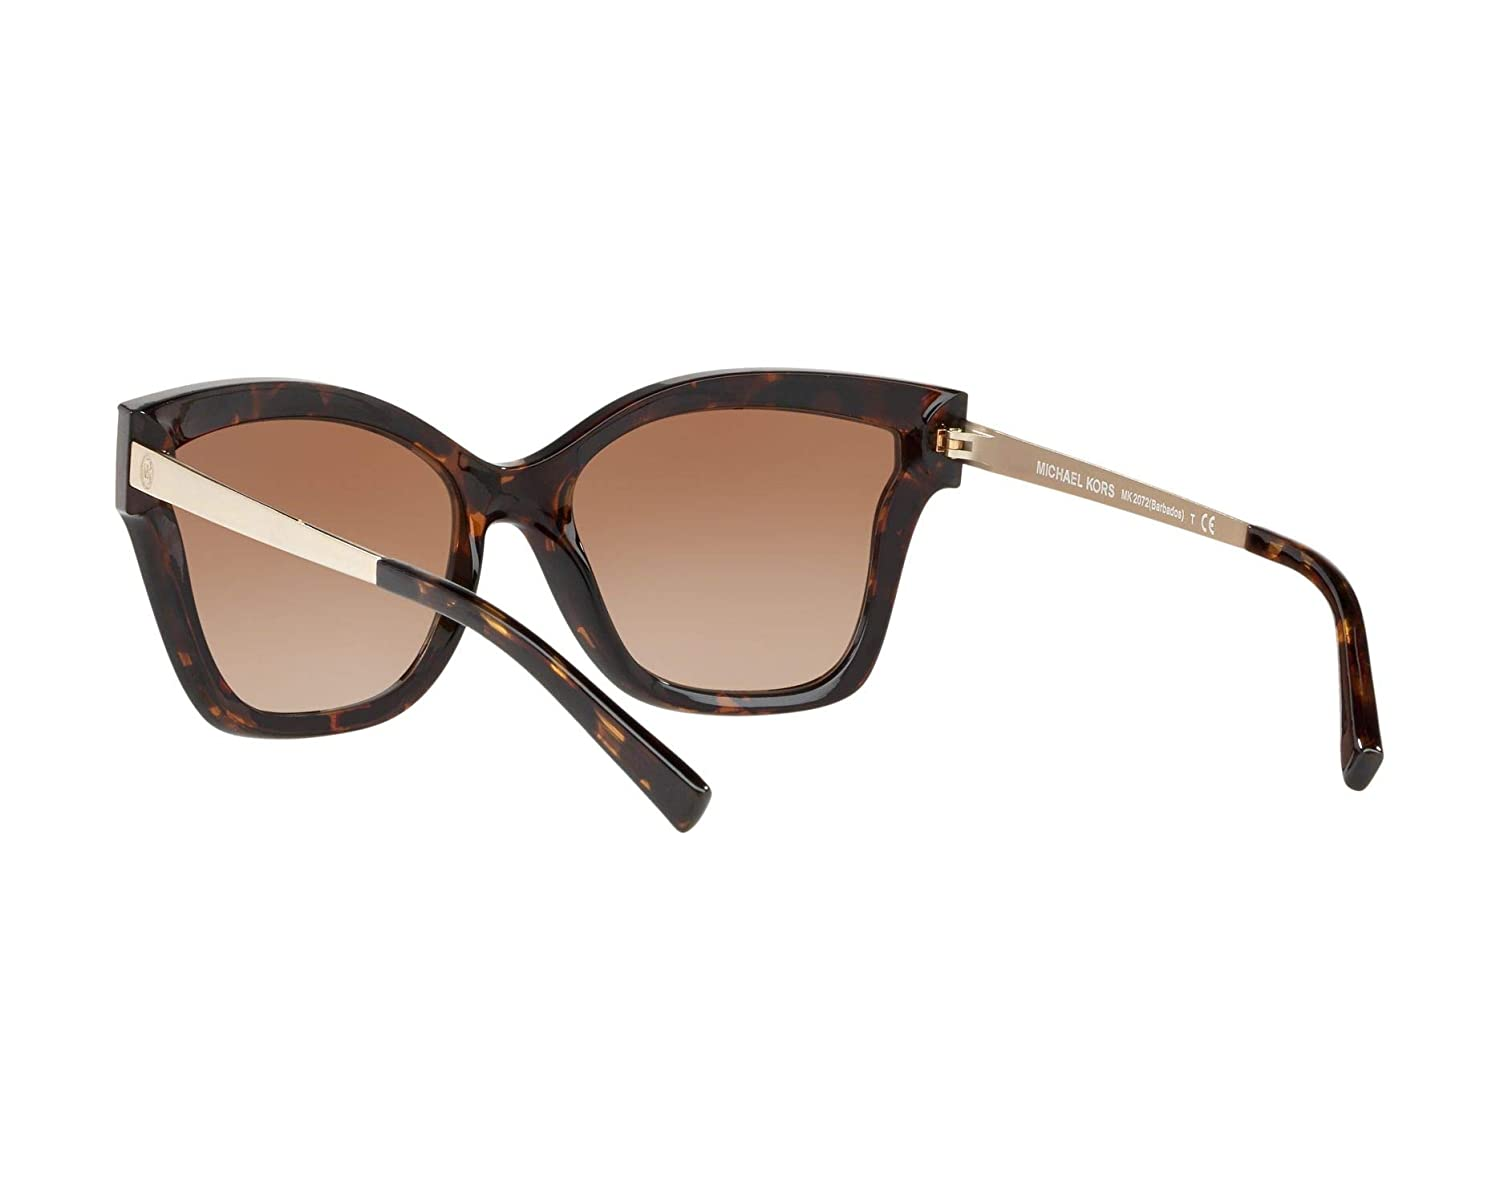 1eeadc44d4 Sunglasses Michael Kors MK 2072 333313 DARK TORTOISE INJECTED at Amazon  Men s Clothing store